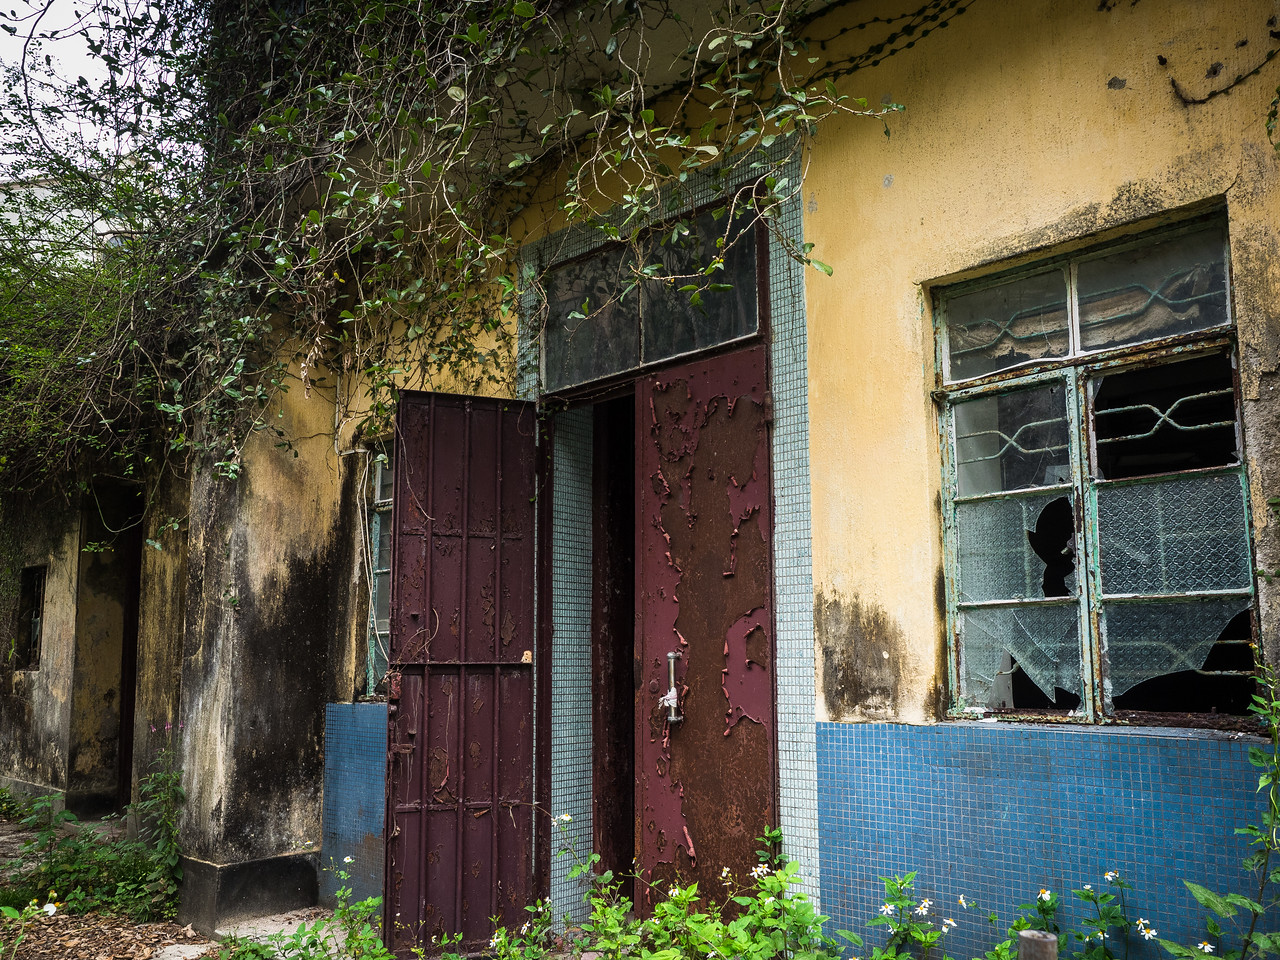 Many of the buildings are lying open and derelict like this.